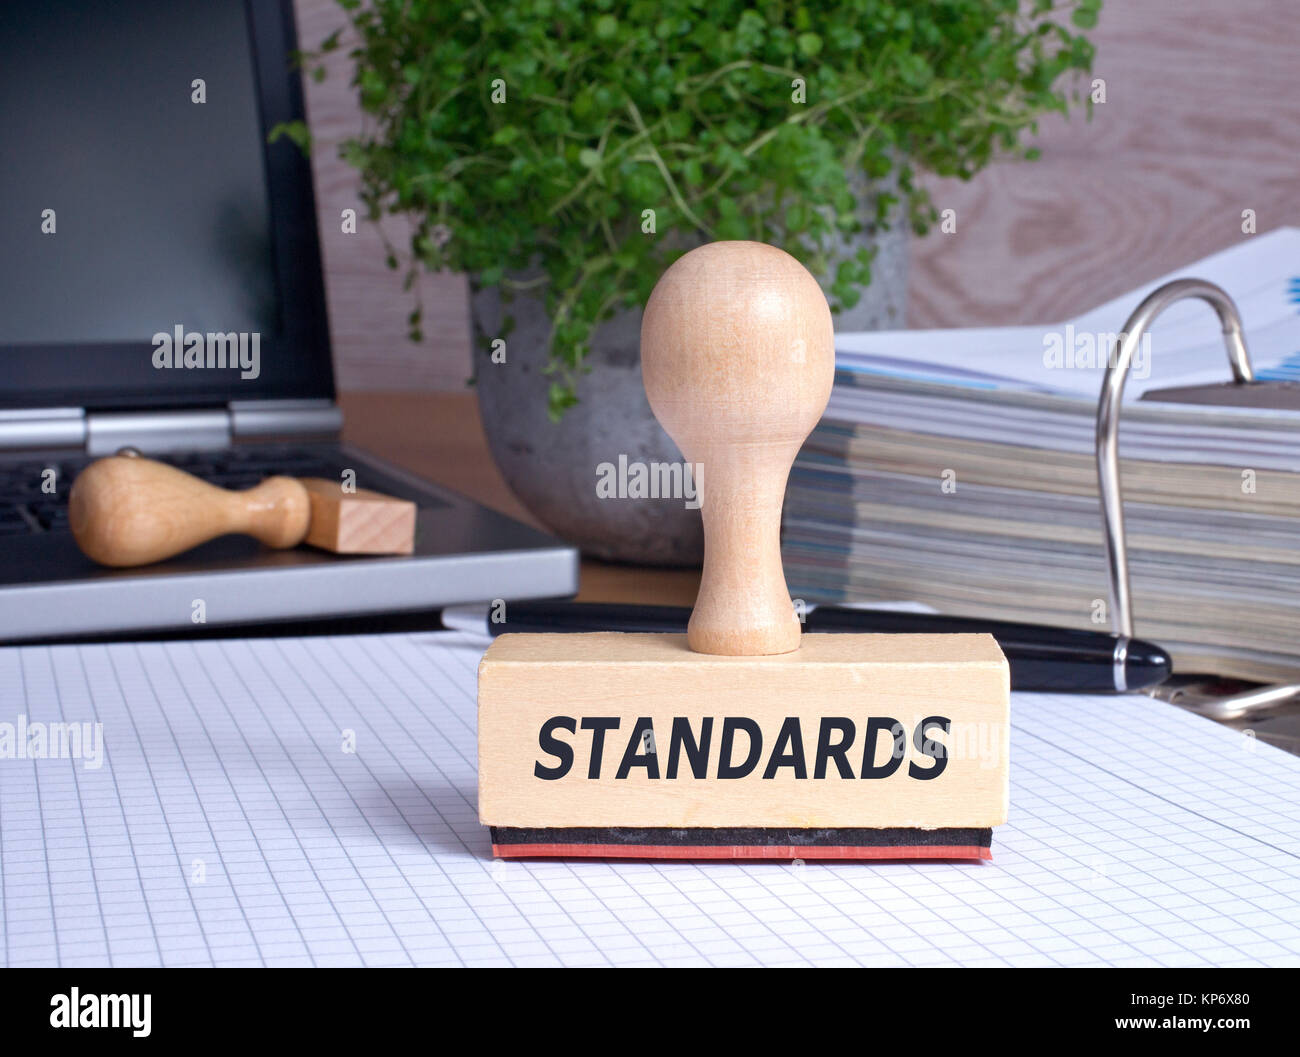 Standards rubber stamp in the office - Stock Image